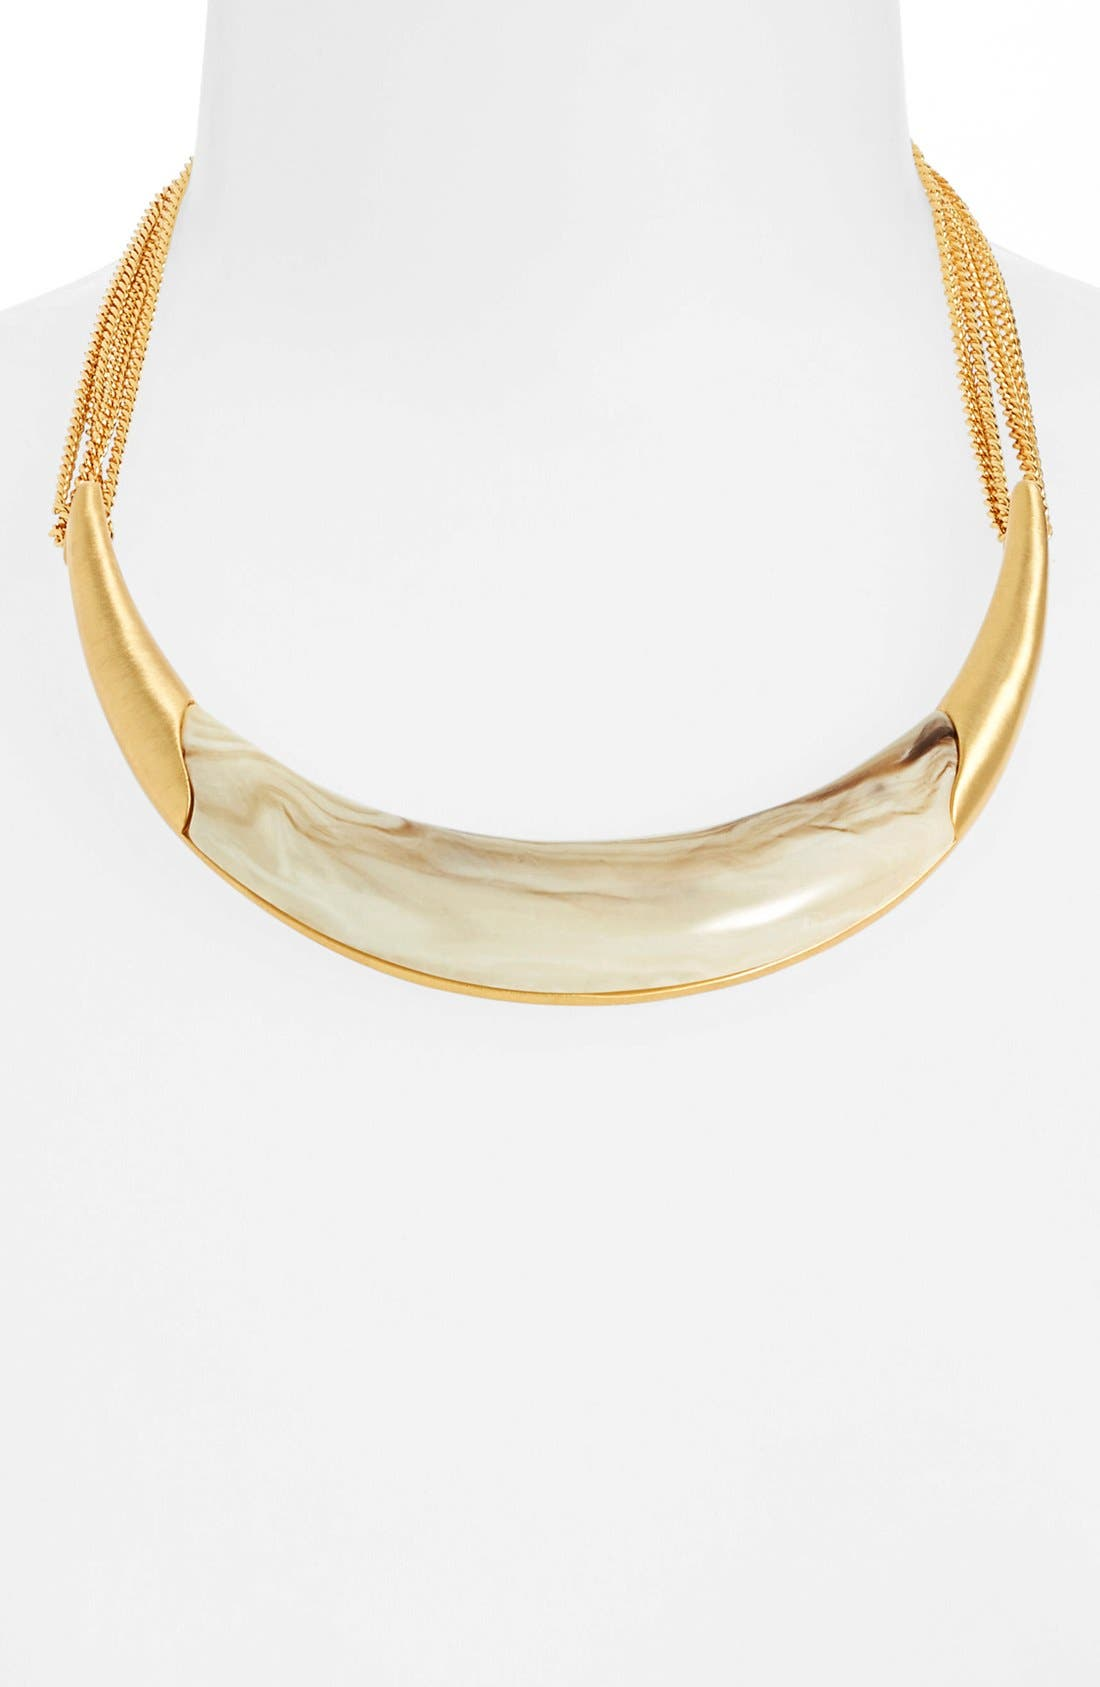 Alternate Image 1 Selected - Vince Camuto 'Thorns & Horns' Bib Necklace